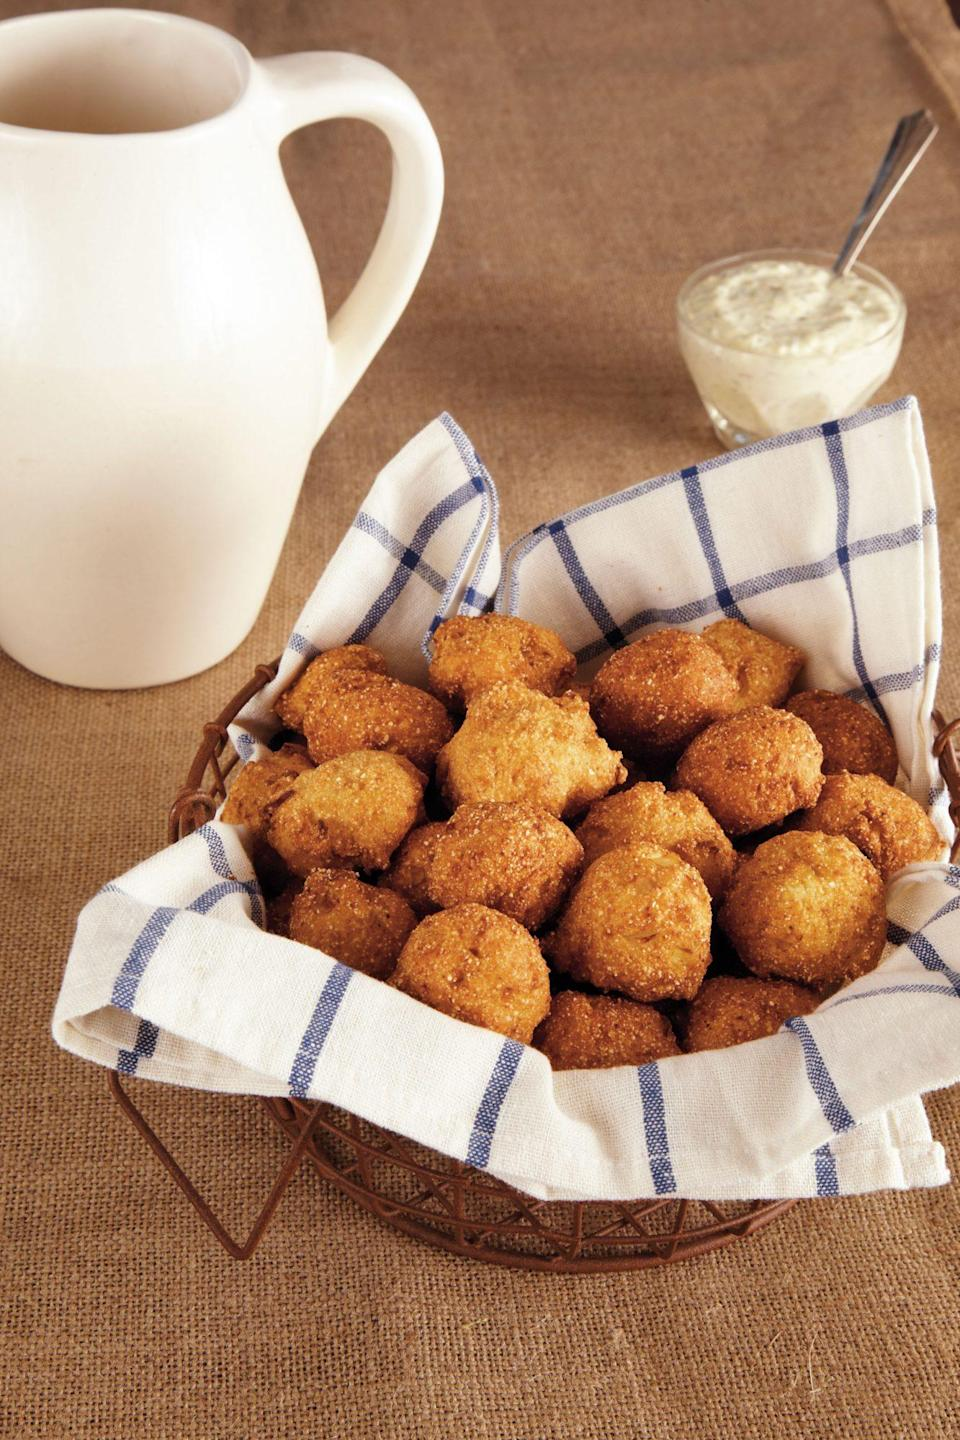 """<p><strong>Recipe:</strong> <a href=""""https://www.southernliving.com/recipes/hush-puppies"""" rel=""""nofollow noopener"""" target=""""_blank"""" data-ylk=""""slk:Hush Puppies"""" class=""""link rapid-noclick-resp"""">Hush Puppies</a></p> <p>Nothing beats a classic hush puppy recipe. Pop a basket of these puppies on the table, and we promise they'll be gone in no time.</p>"""